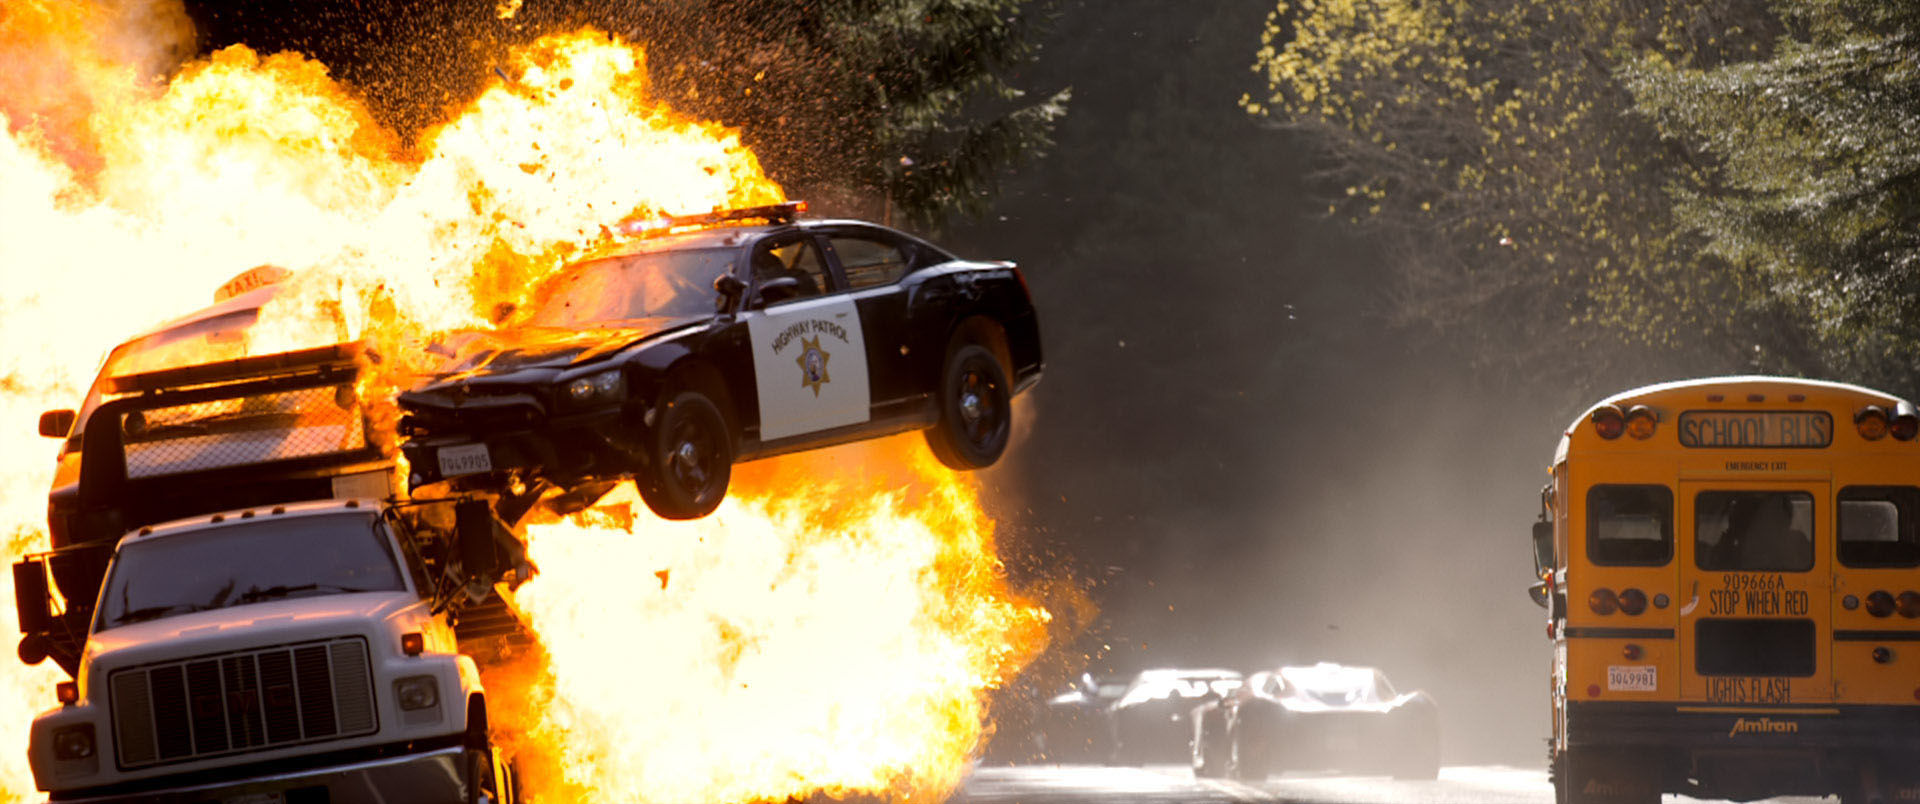 Need For Speed Movie Stunt Cop Cars Explosions NEED FOR SPEED Movie Stunt   Cop Car Explosions